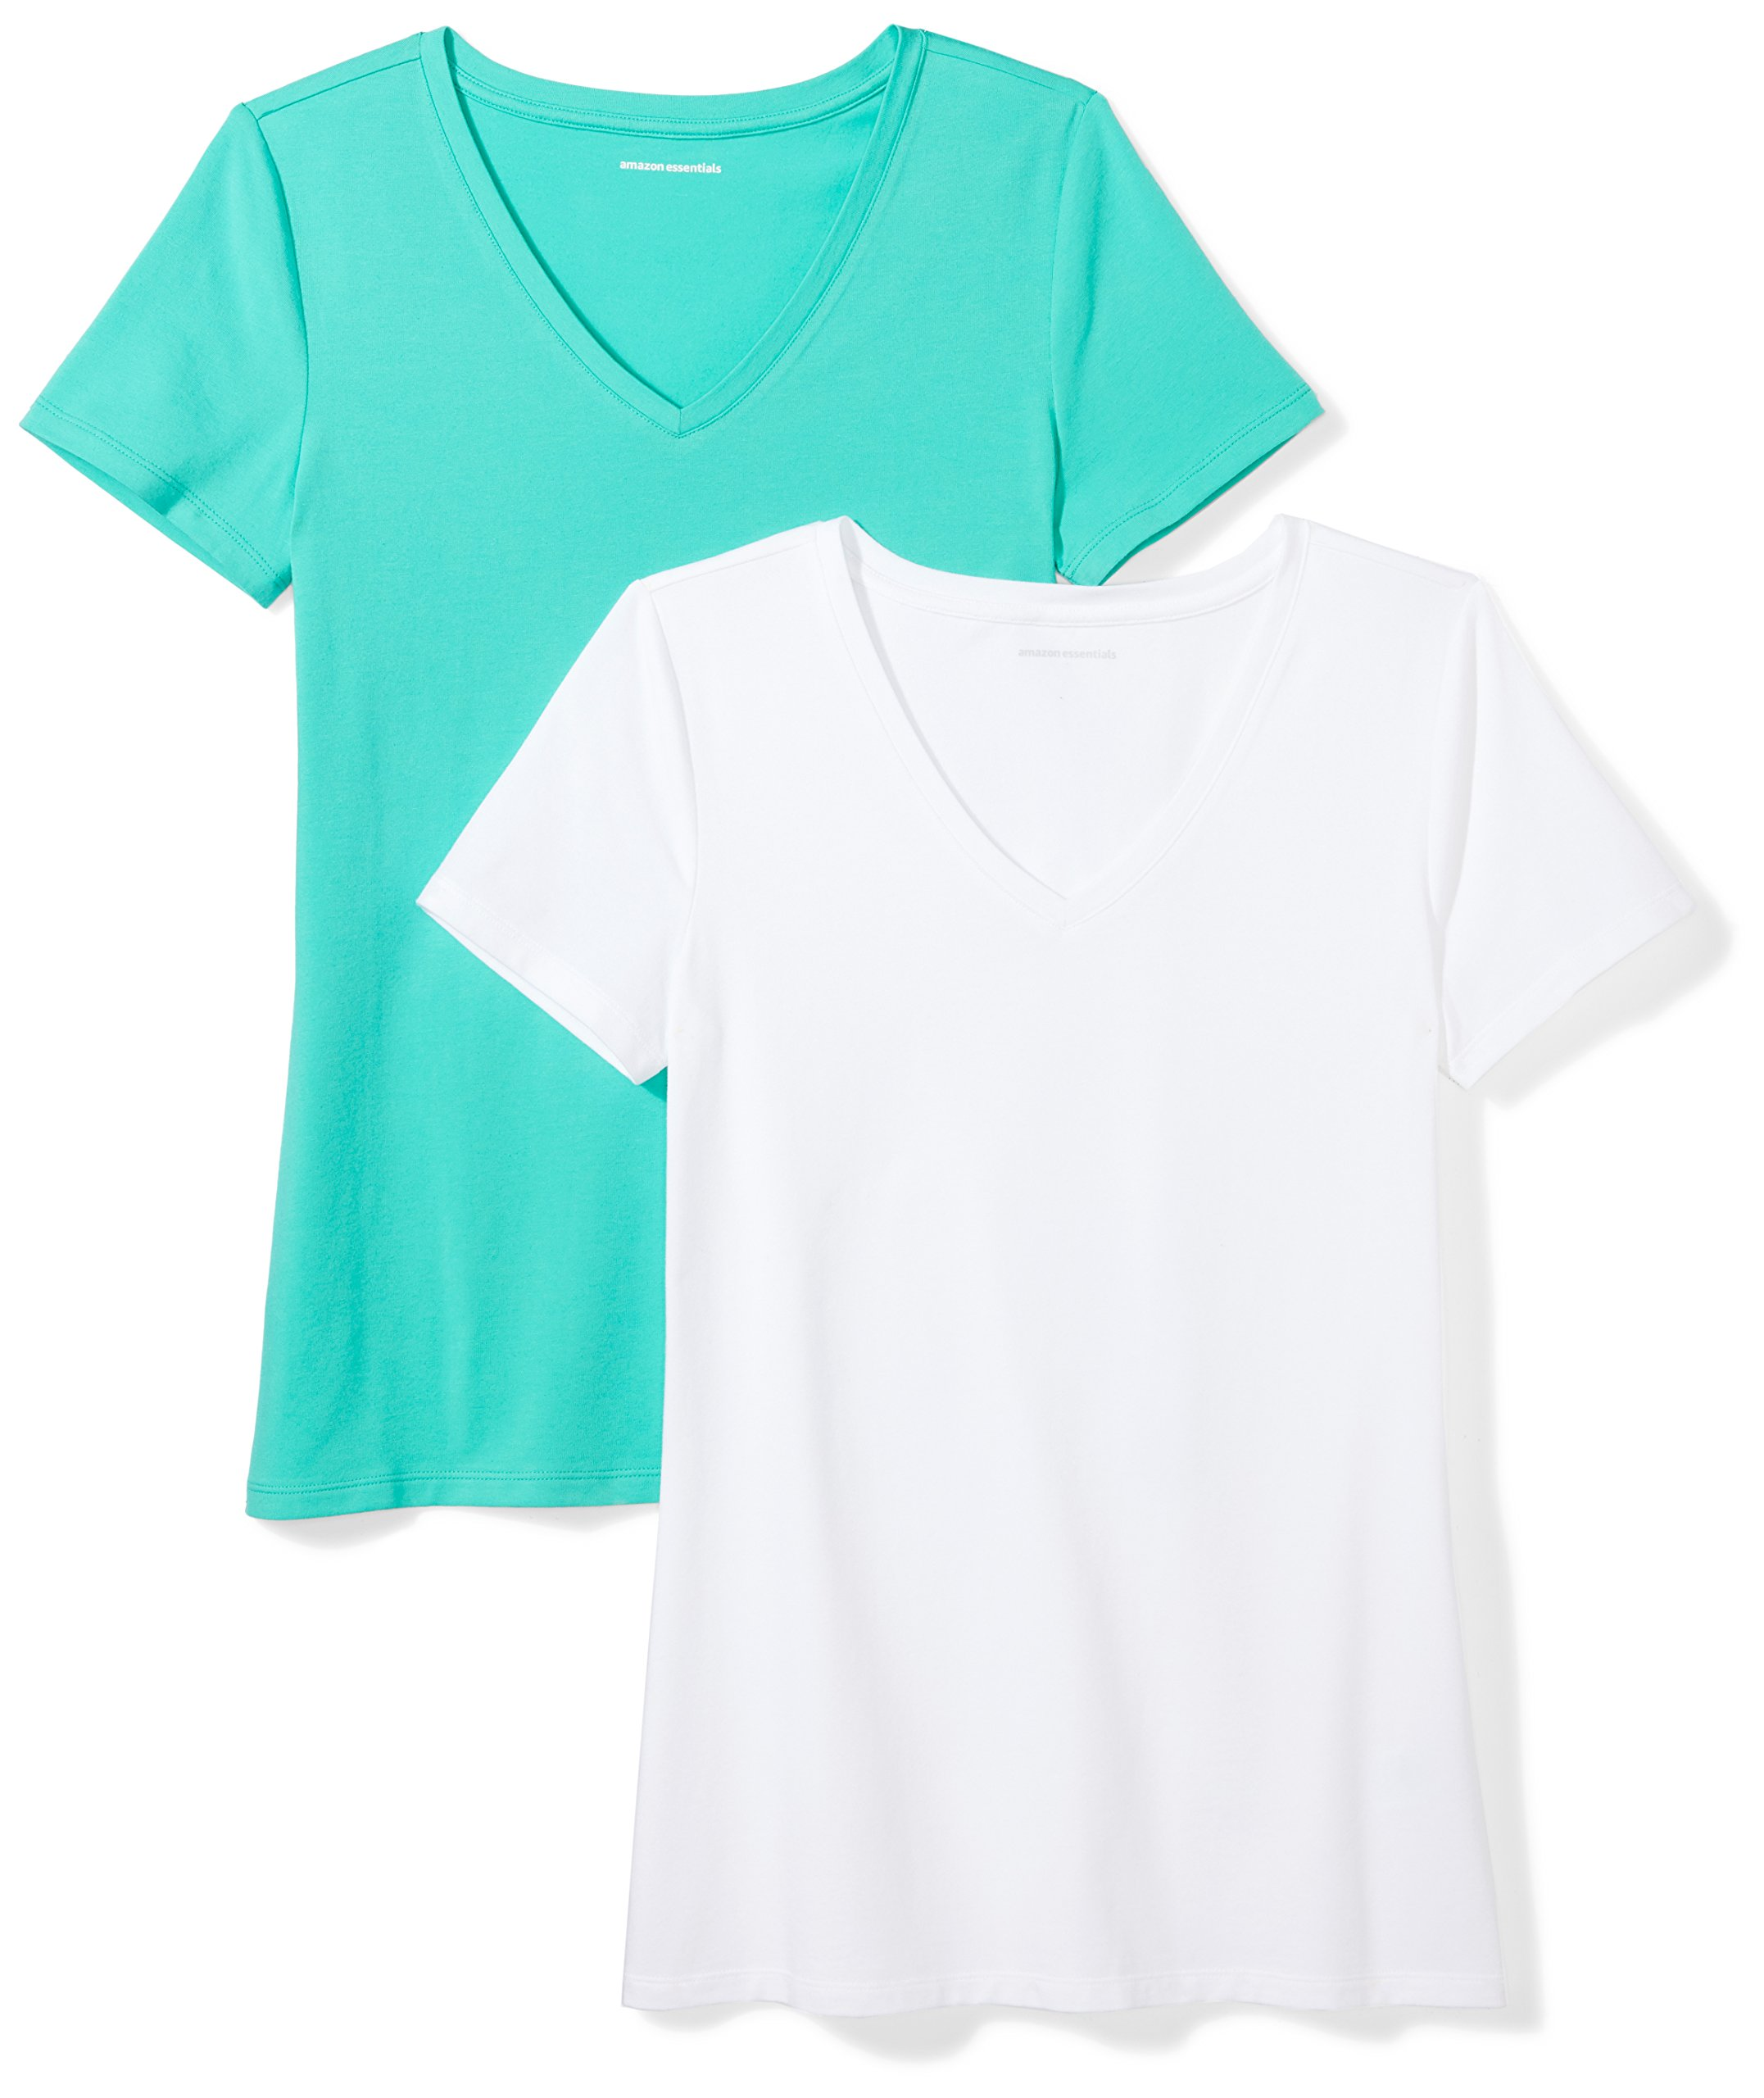 Amazon Essentials Women's 2-Pack Short-Sleeve V-Neck Solid T-Shirt, Mint Green/White, Small